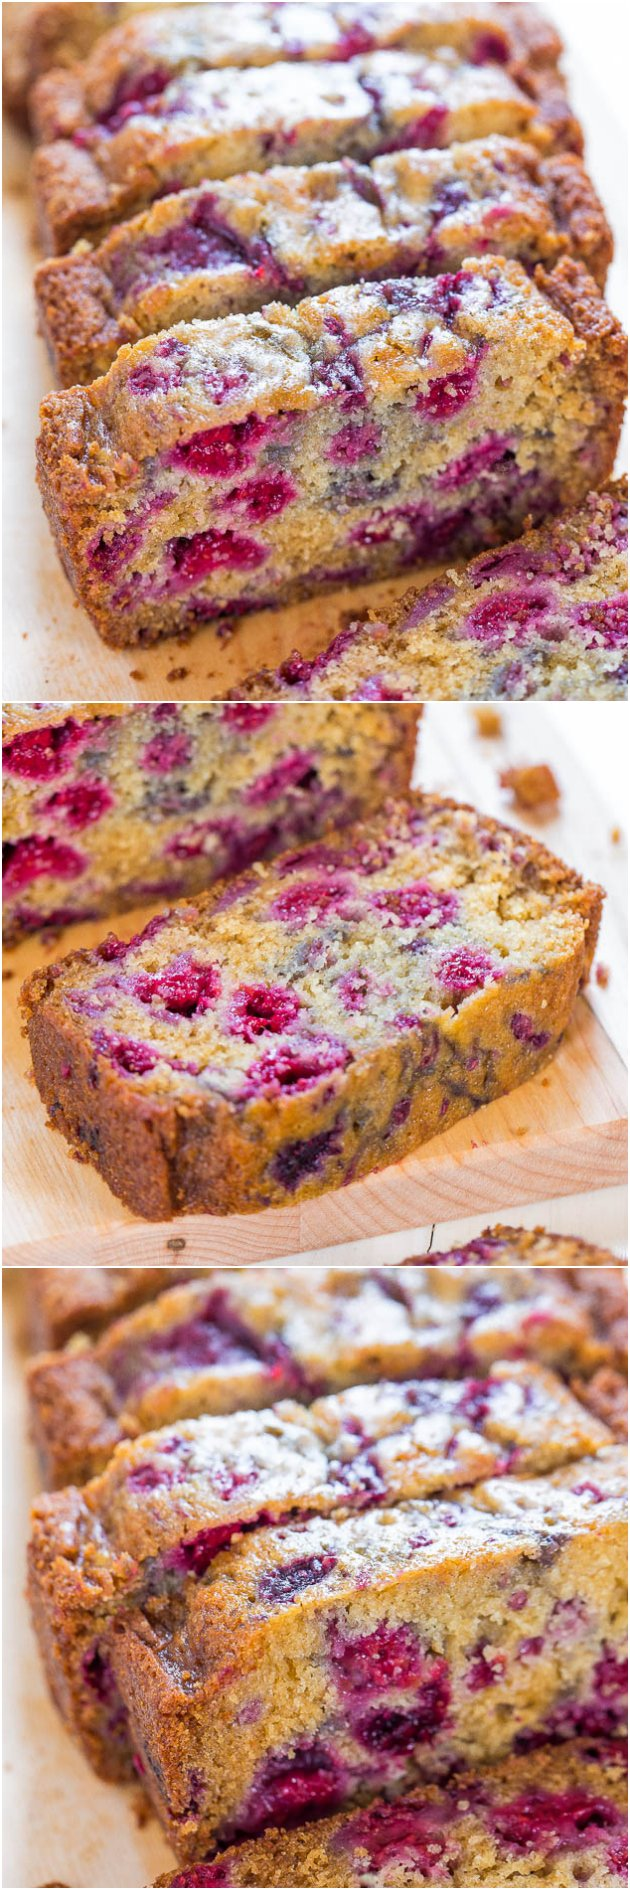 The Best Raspberry Bread - There's almost more raspberries than bread! Super soft and just bursting with juicy berries! So delishhhh!